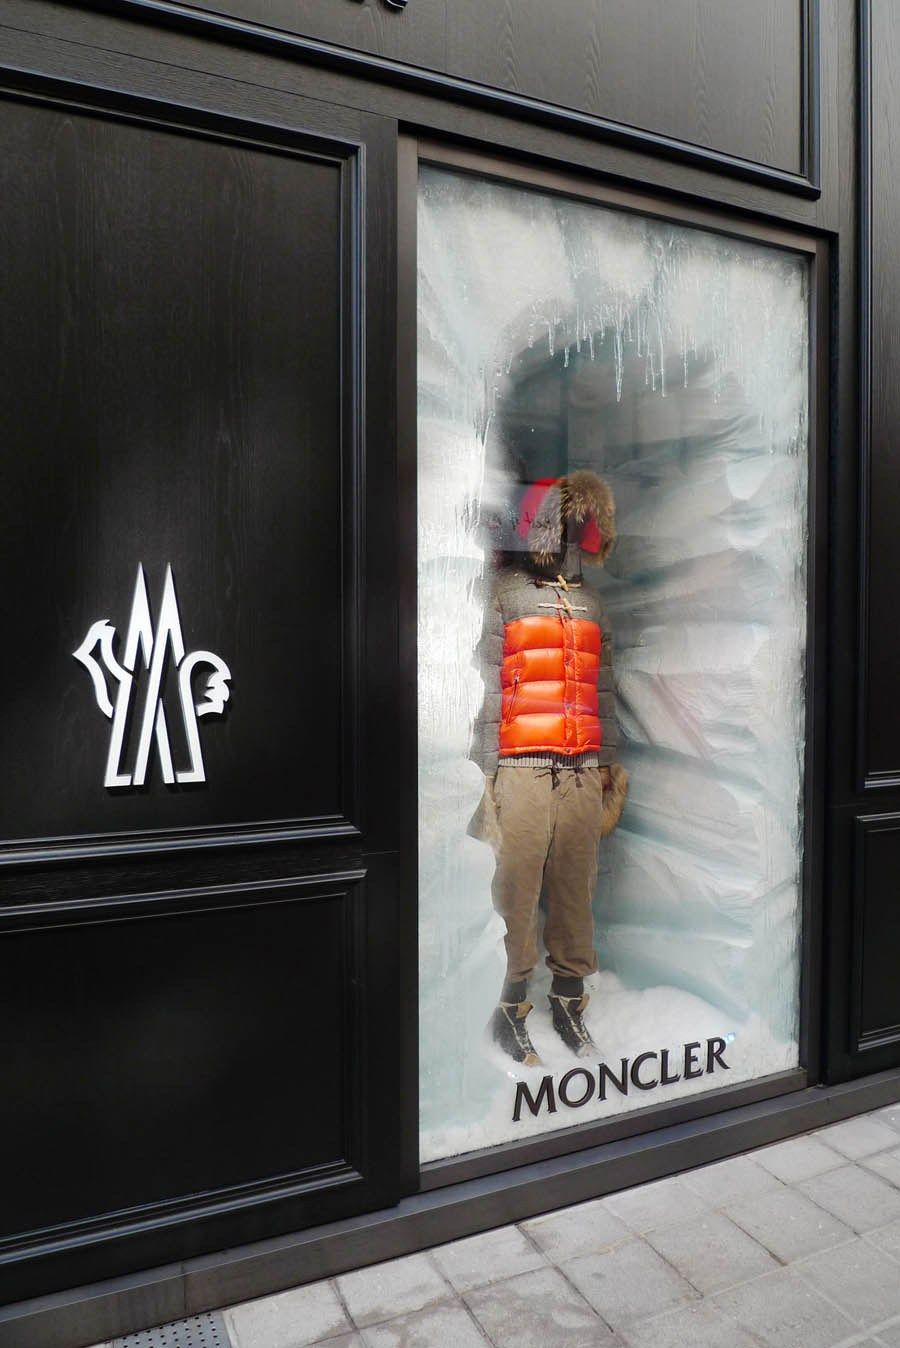 moncler shop in vienna